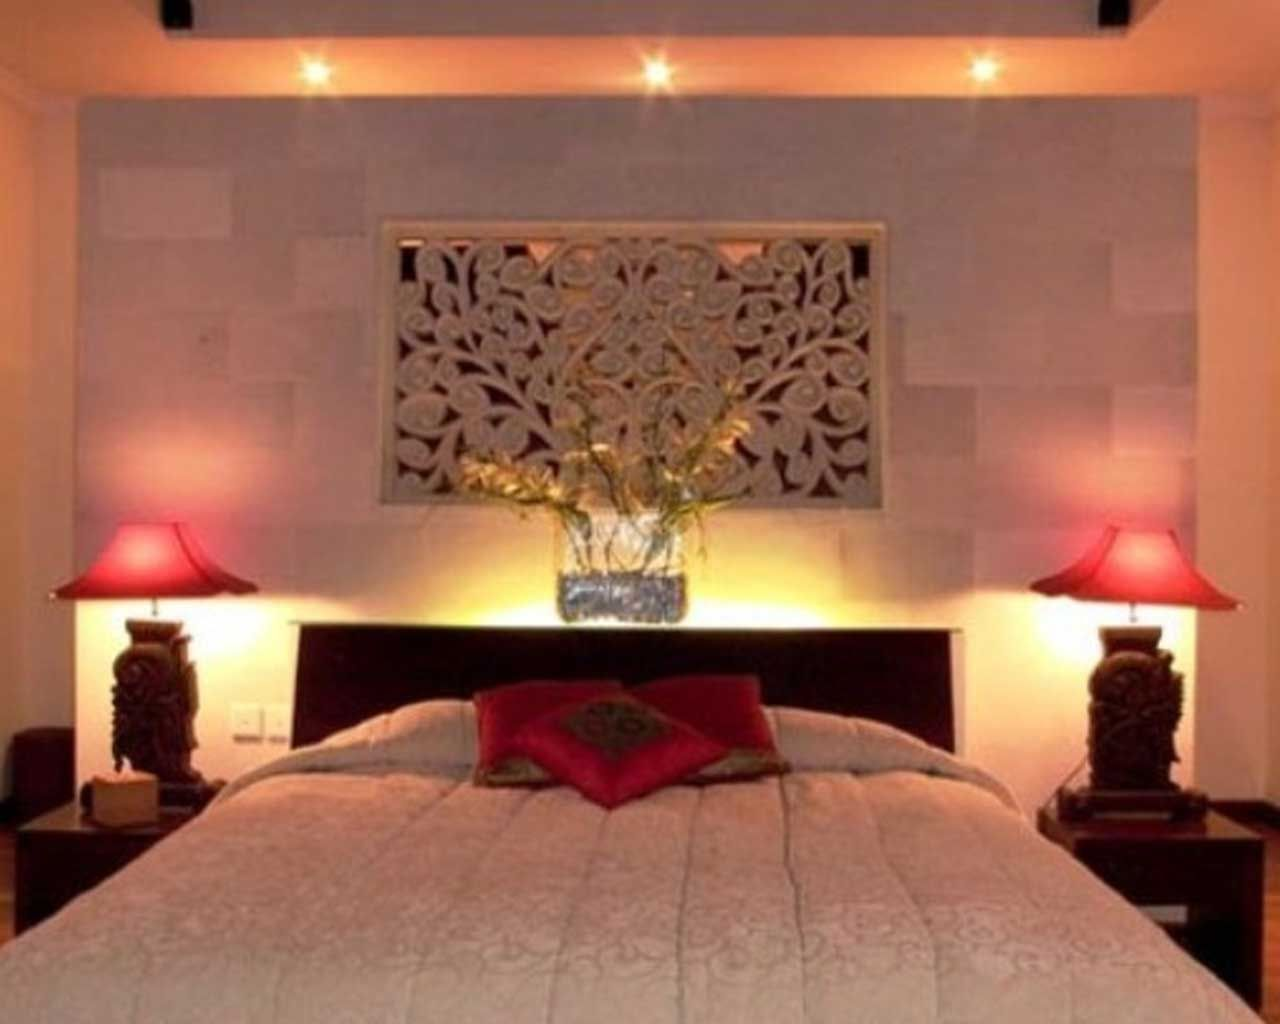 Romantic Bedroom Decoration 17 Best Images About Romantic Bedroom Decorating On Pinterest